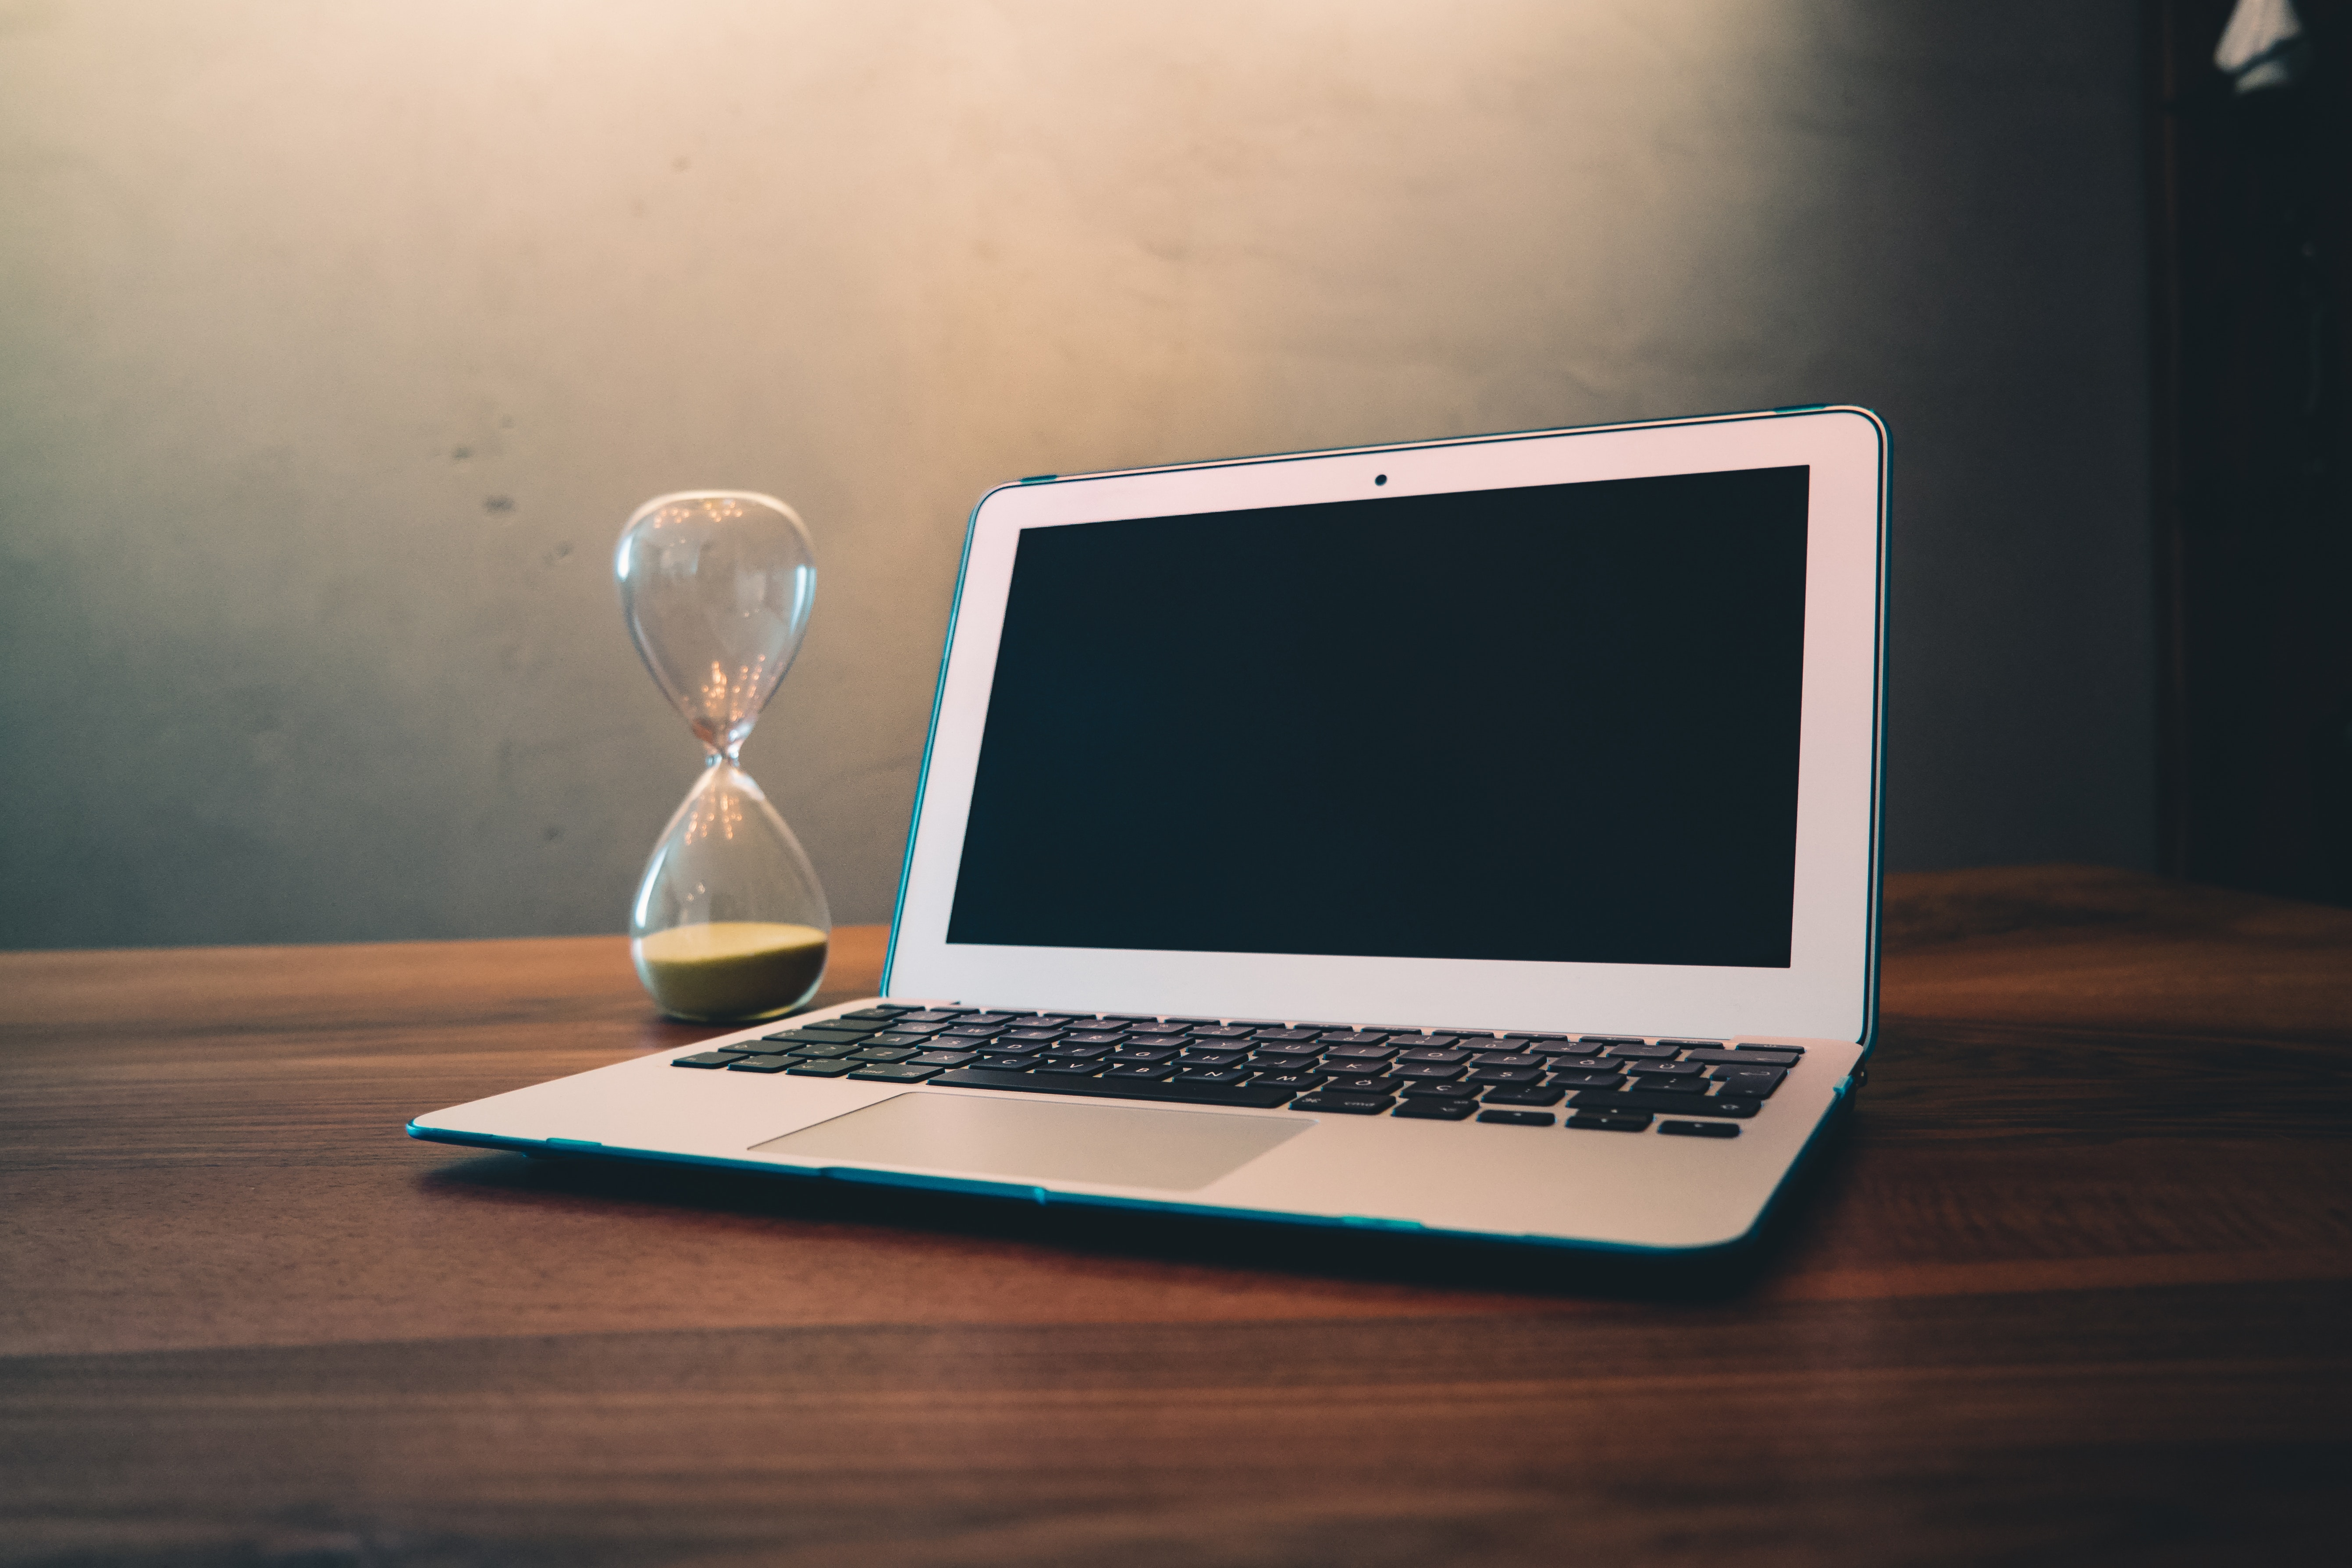 Computer Laptop Beside Hour Glass on Brown Wooden Surface, Business, Wireless, Technology, Table, HQ Photo